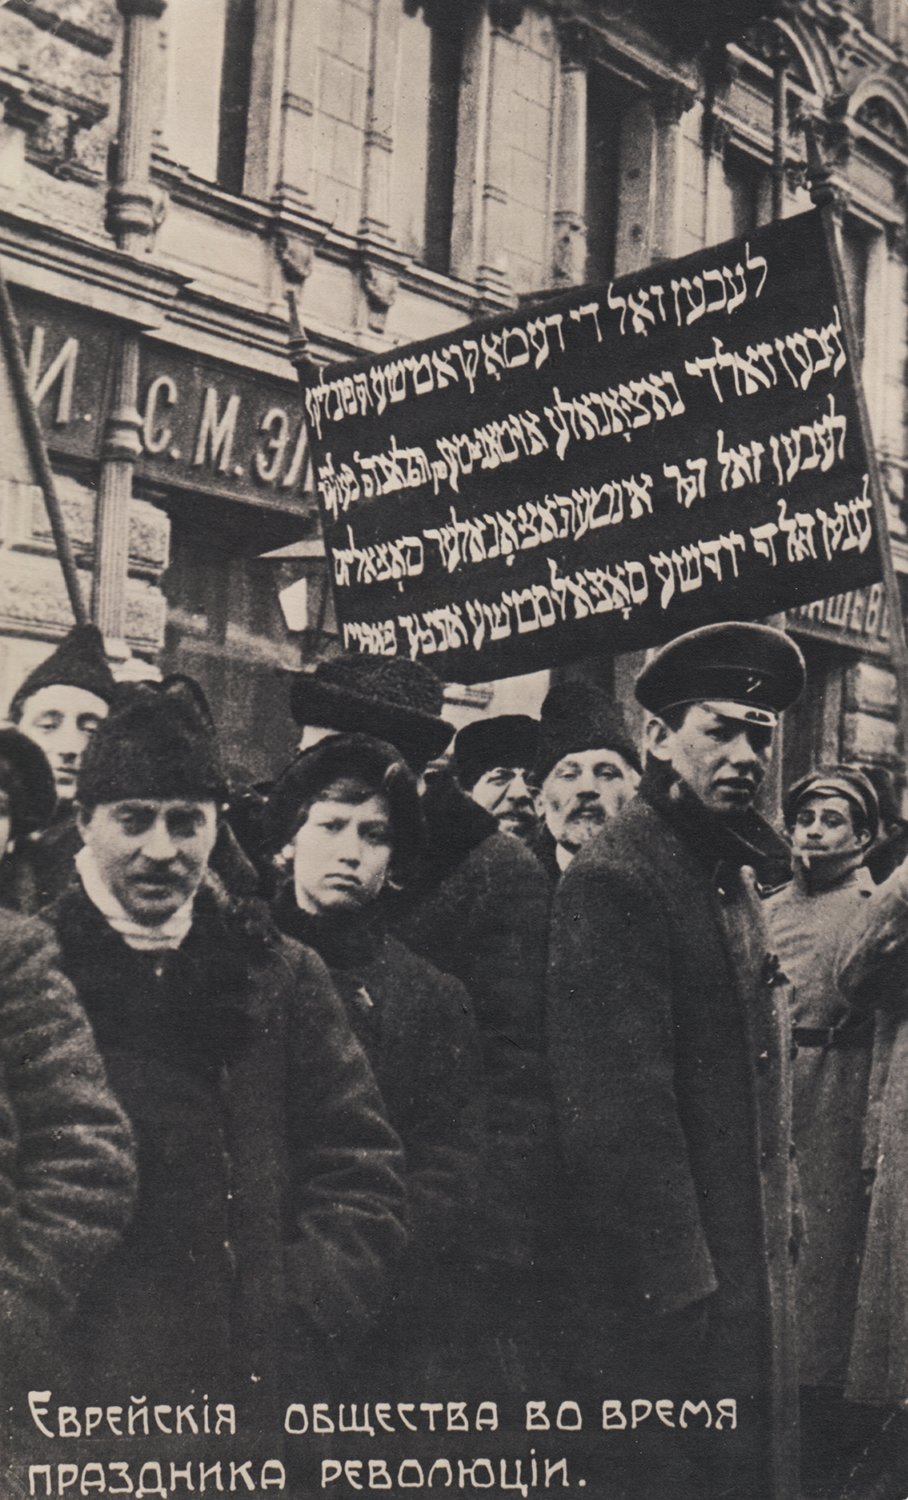 The Jewish community celebrating the Revolution. Postcard.